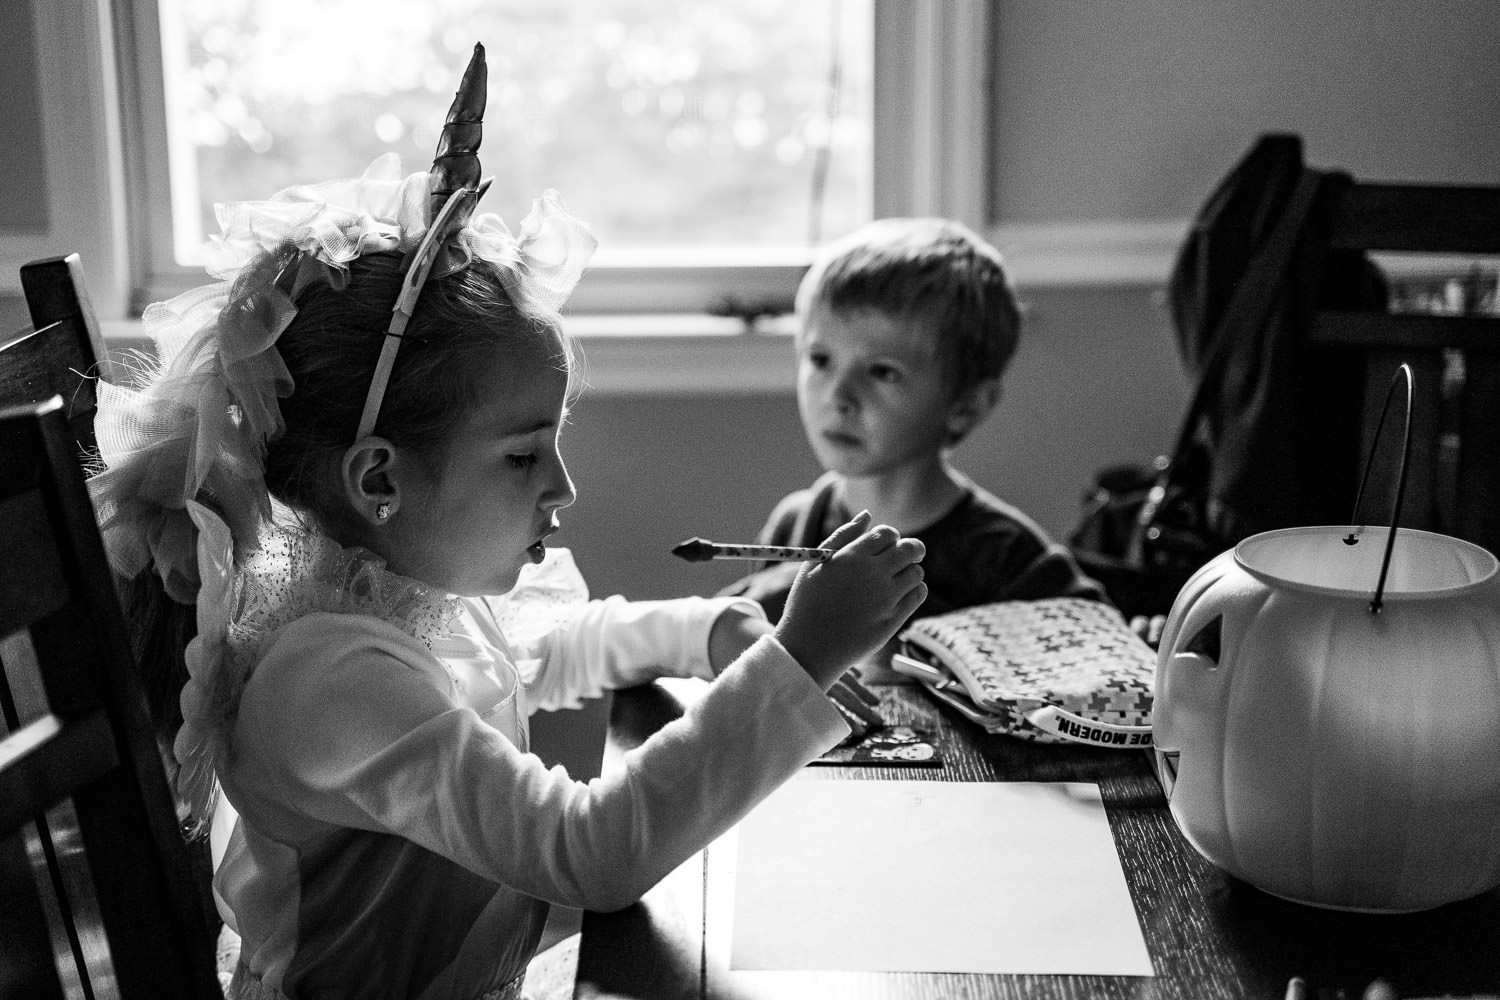 A little girl works on her homework in a unicorn costume.